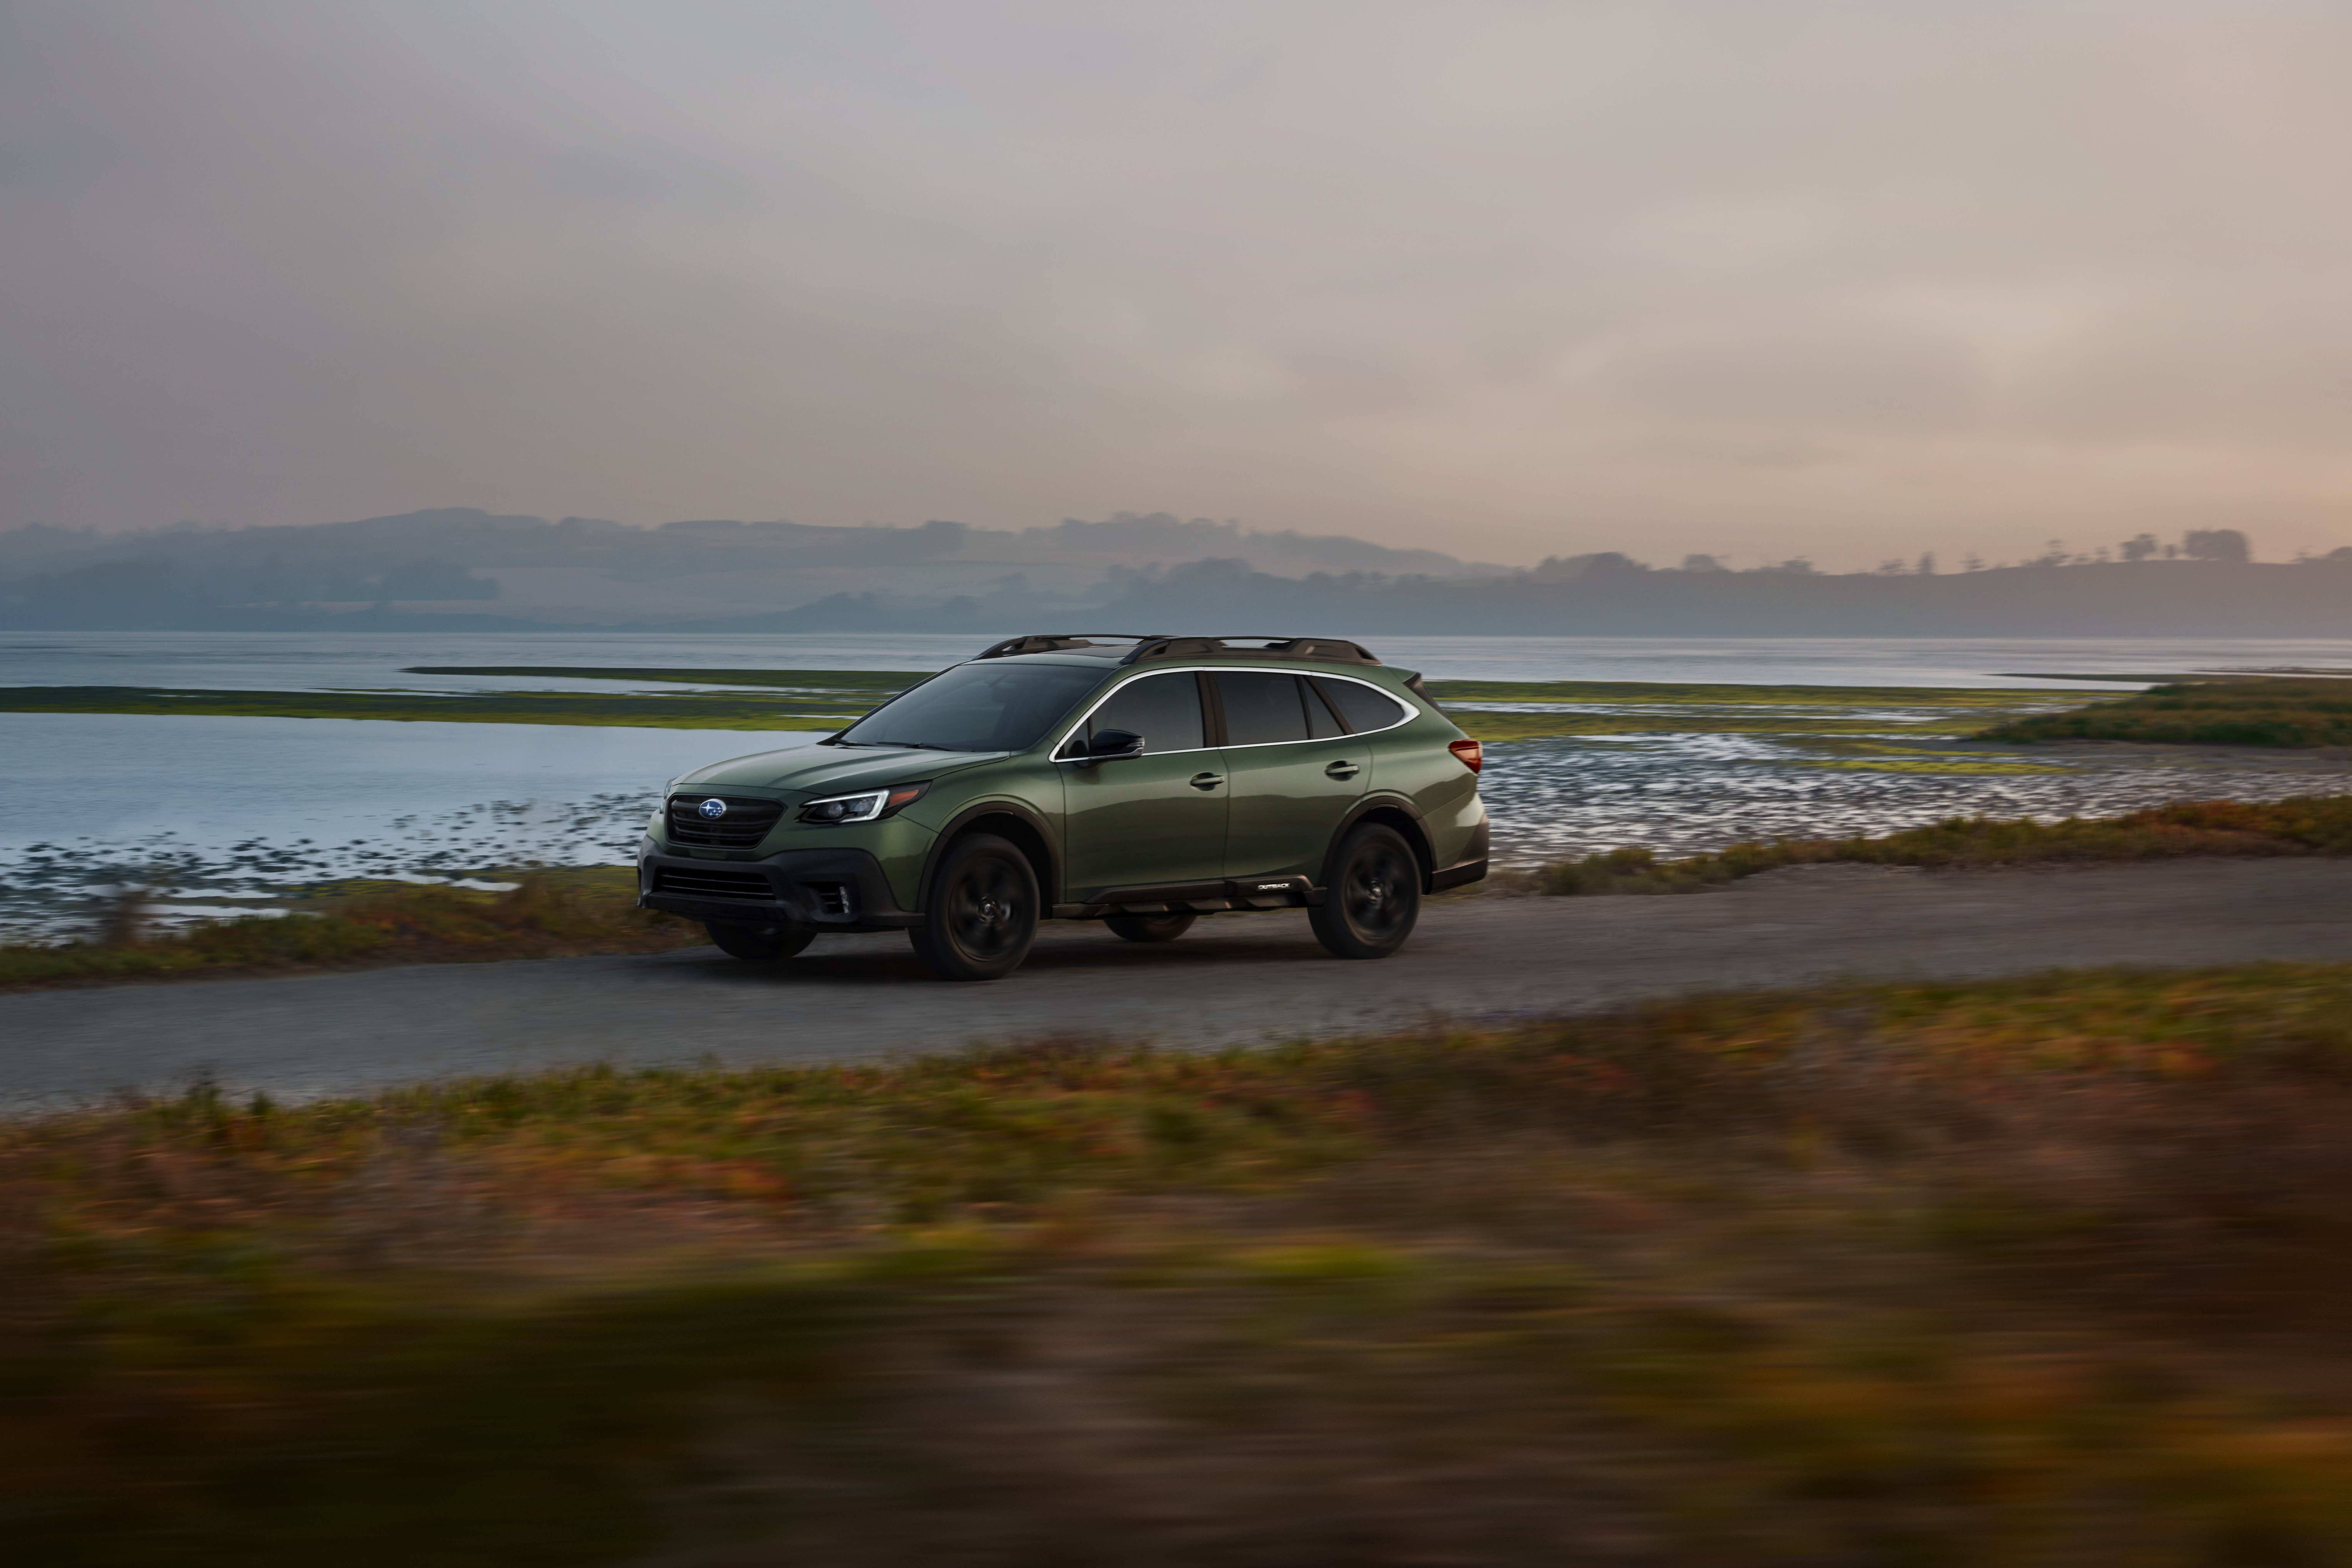 15 Concept of Subaru Outback 2020 Japan Specs and Review with Subaru Outback 2020 Japan